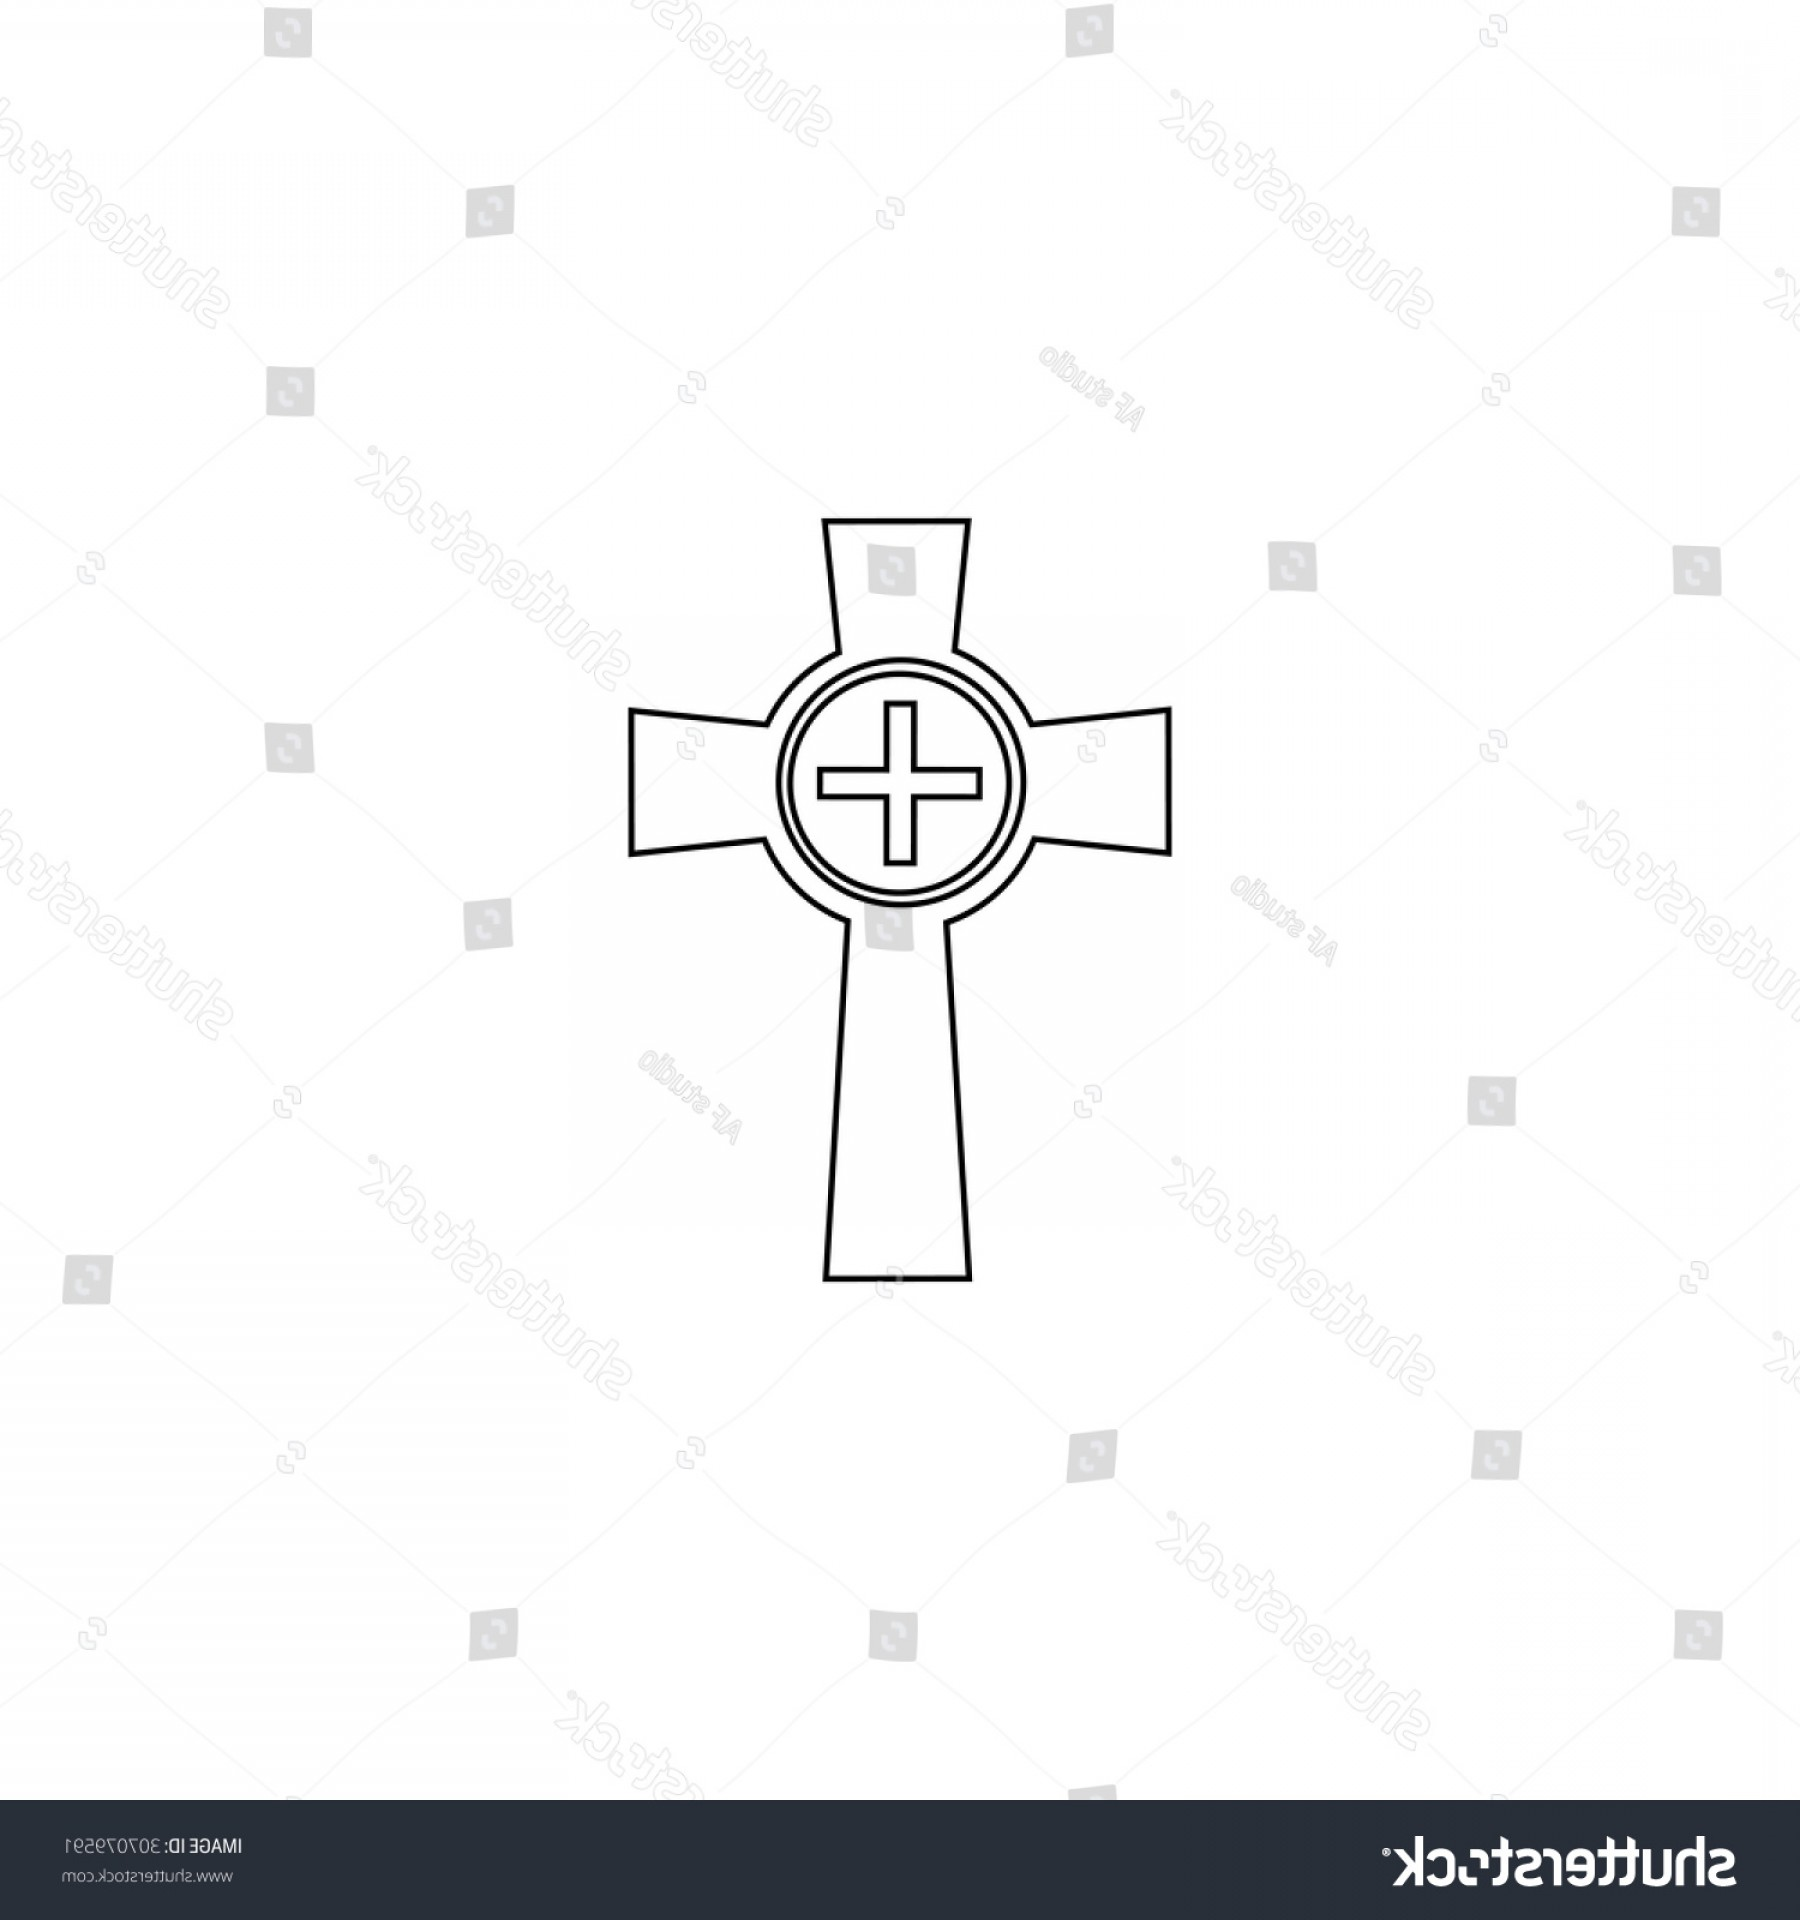 Gravestone Outline Vector: Tombstone Cross Gravestone Outline Black Simple